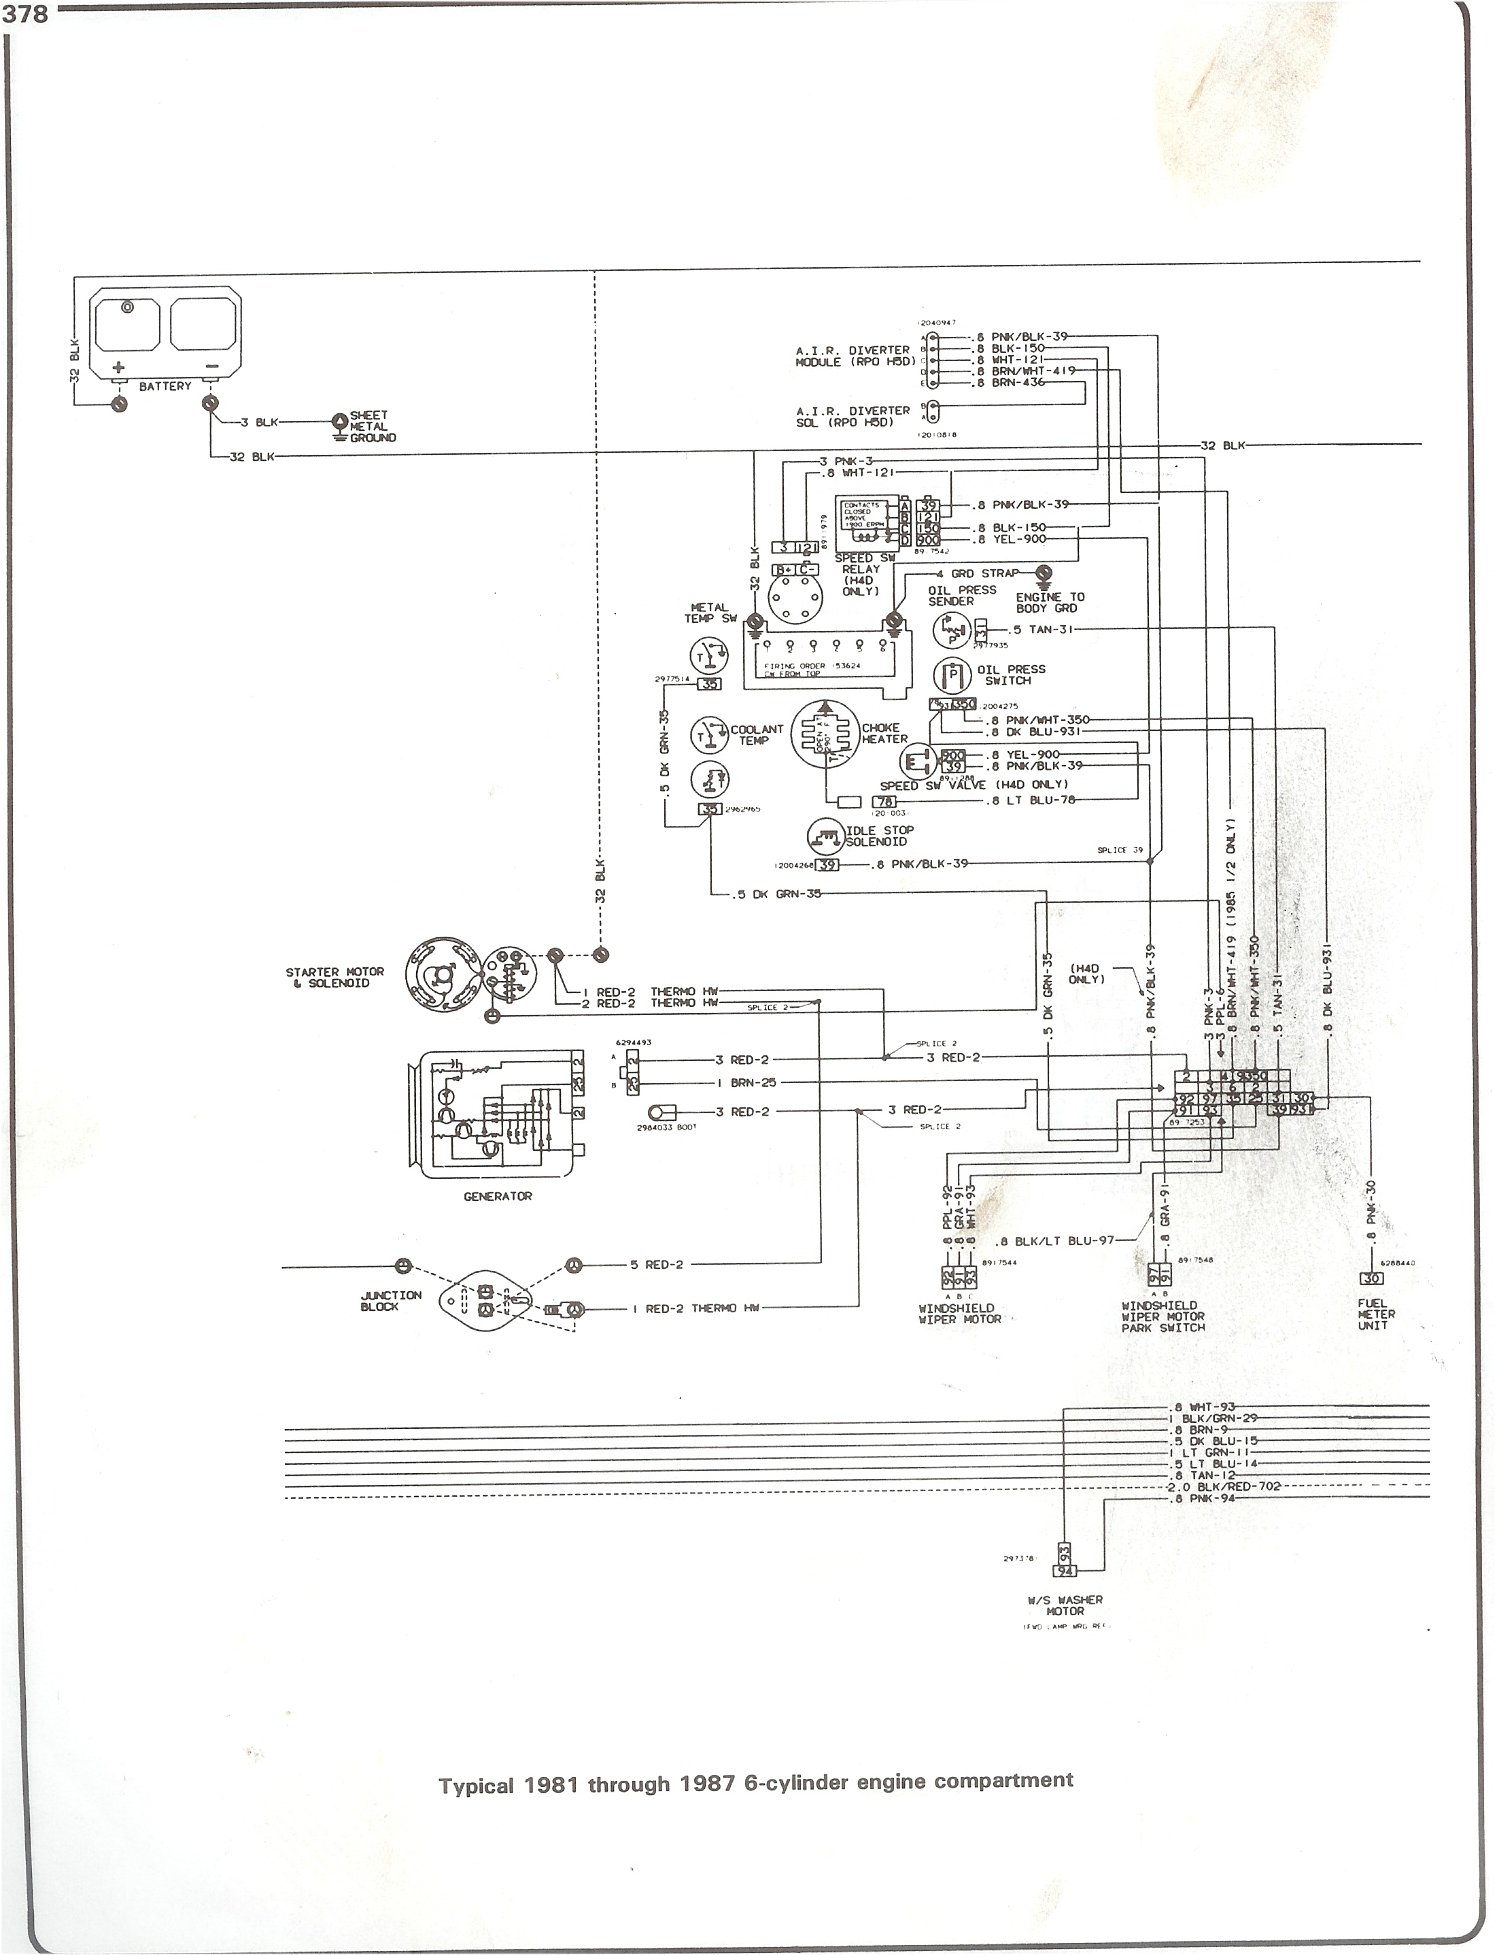 Ignition Switch Wiring Diagram For 91 Chevy Pickup